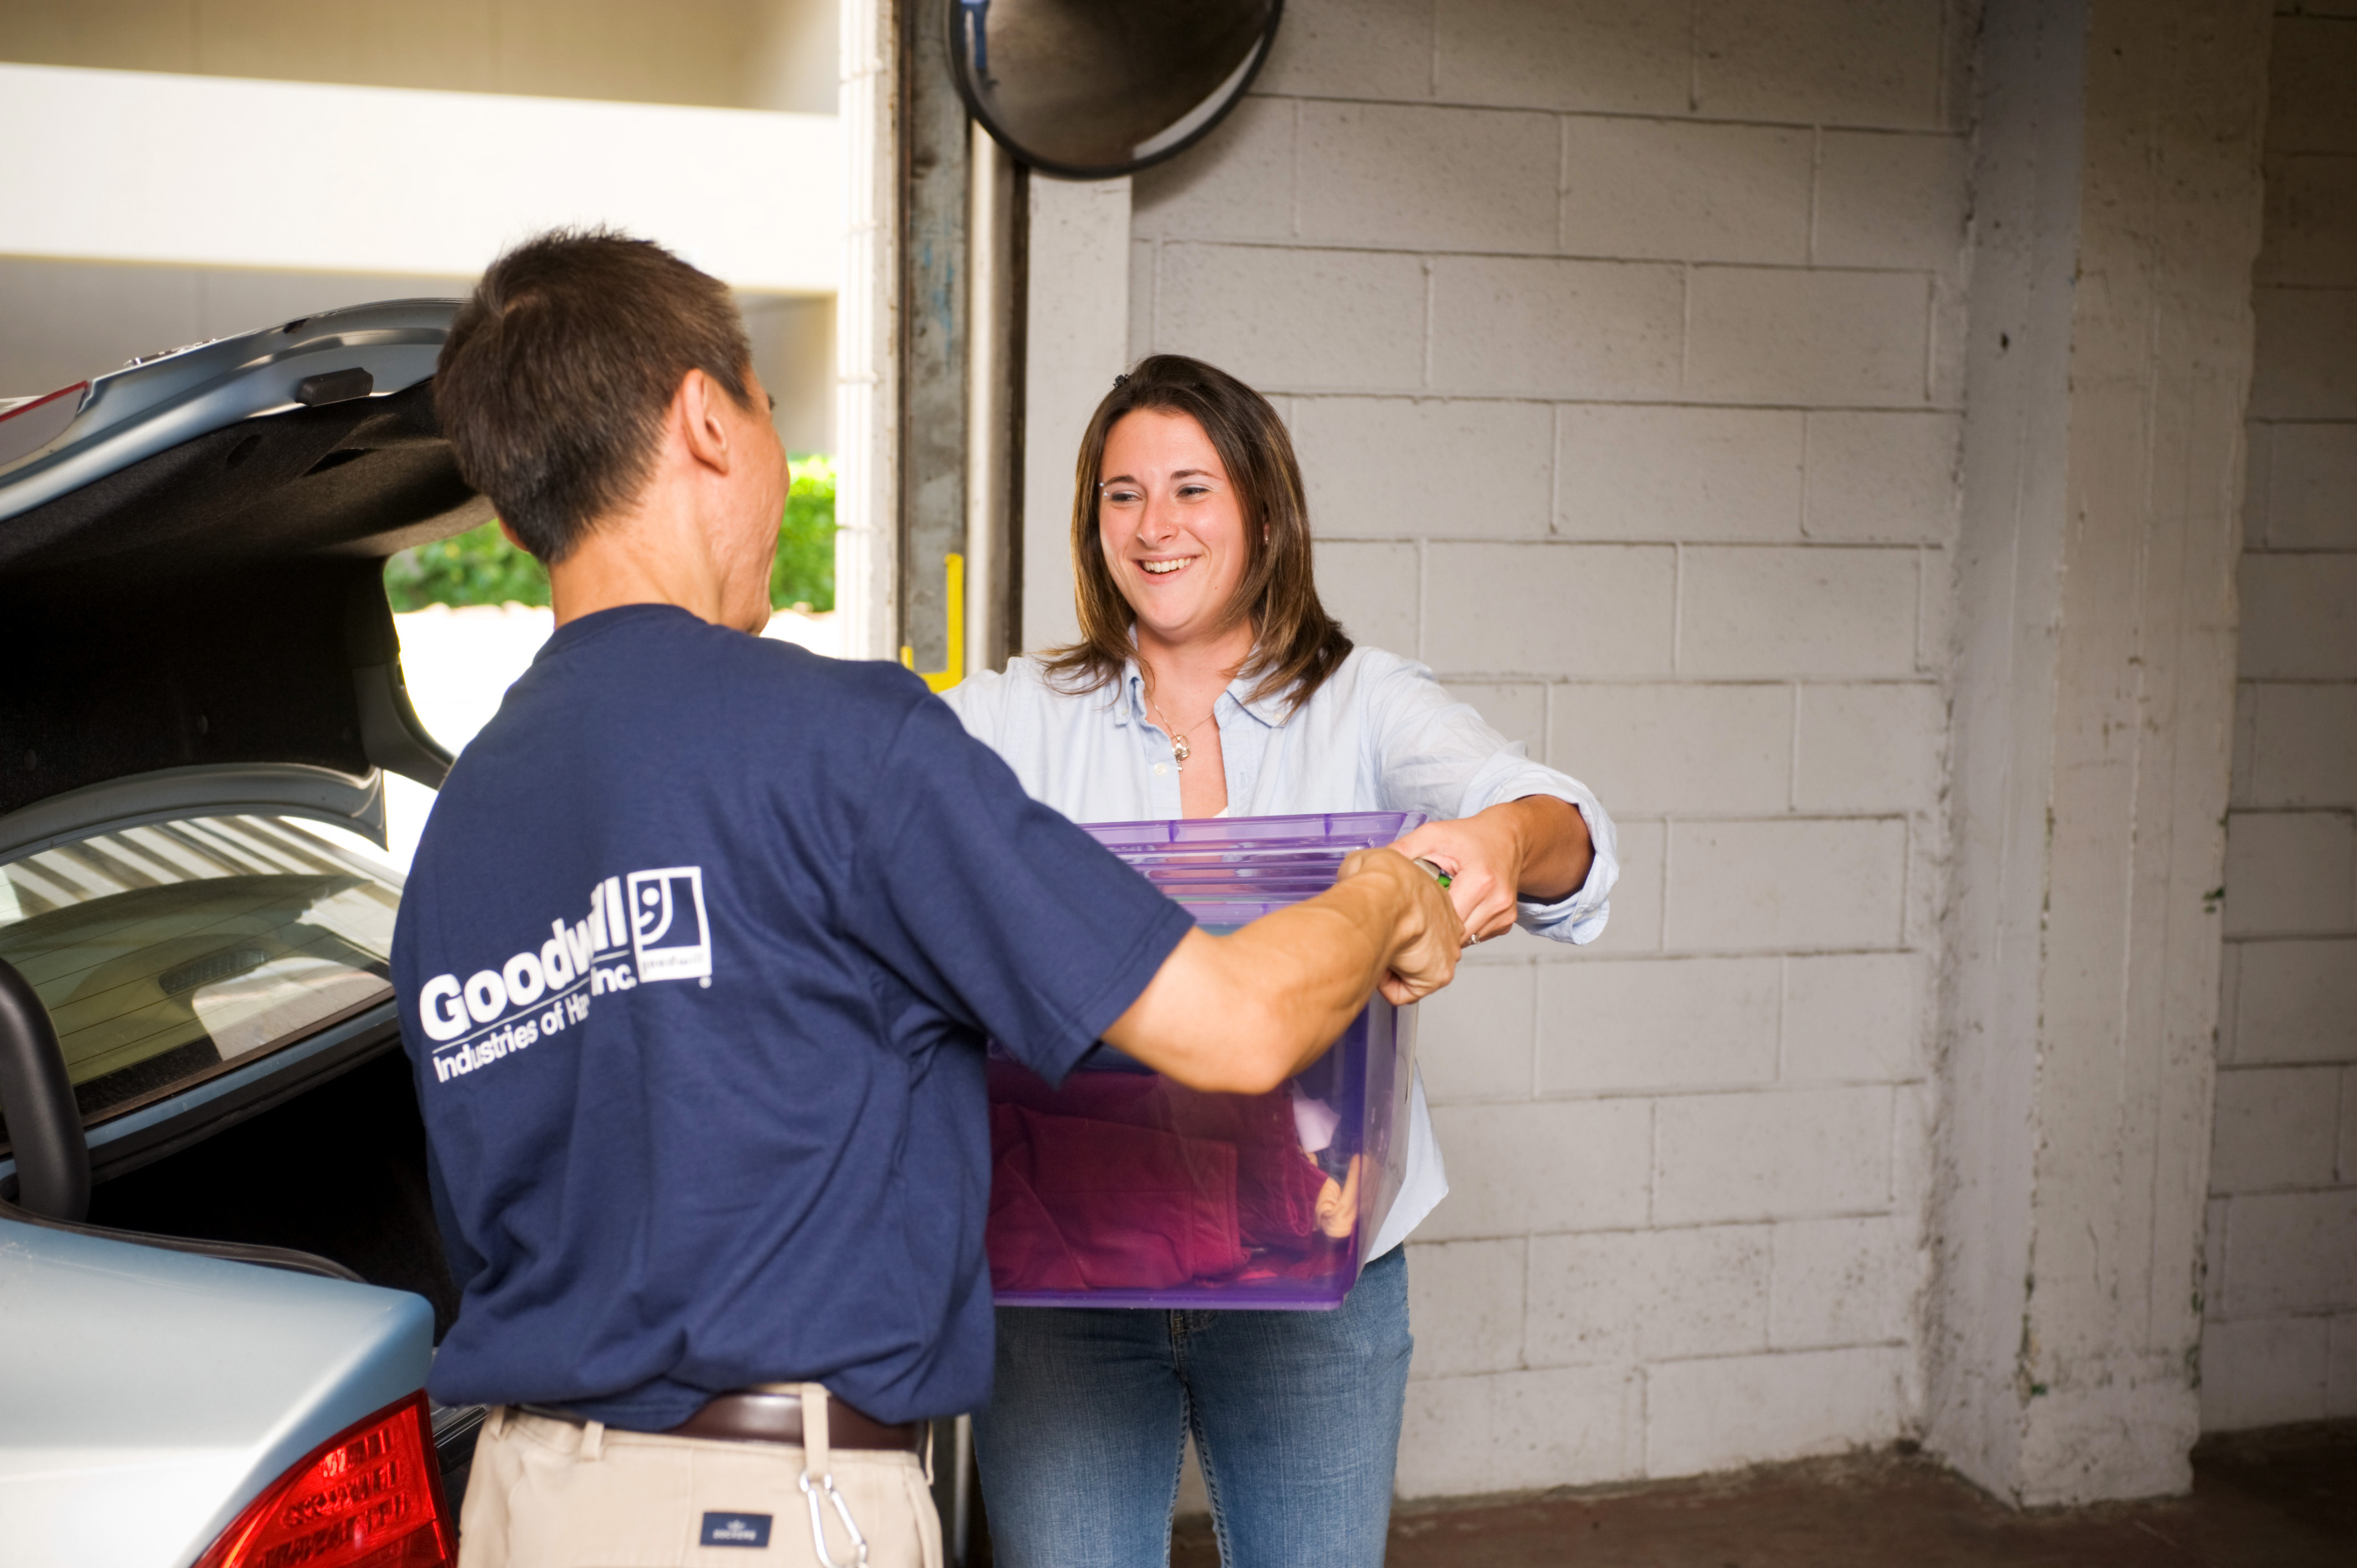 How to Setup a Donation Station | Horizon Goodwill Industries